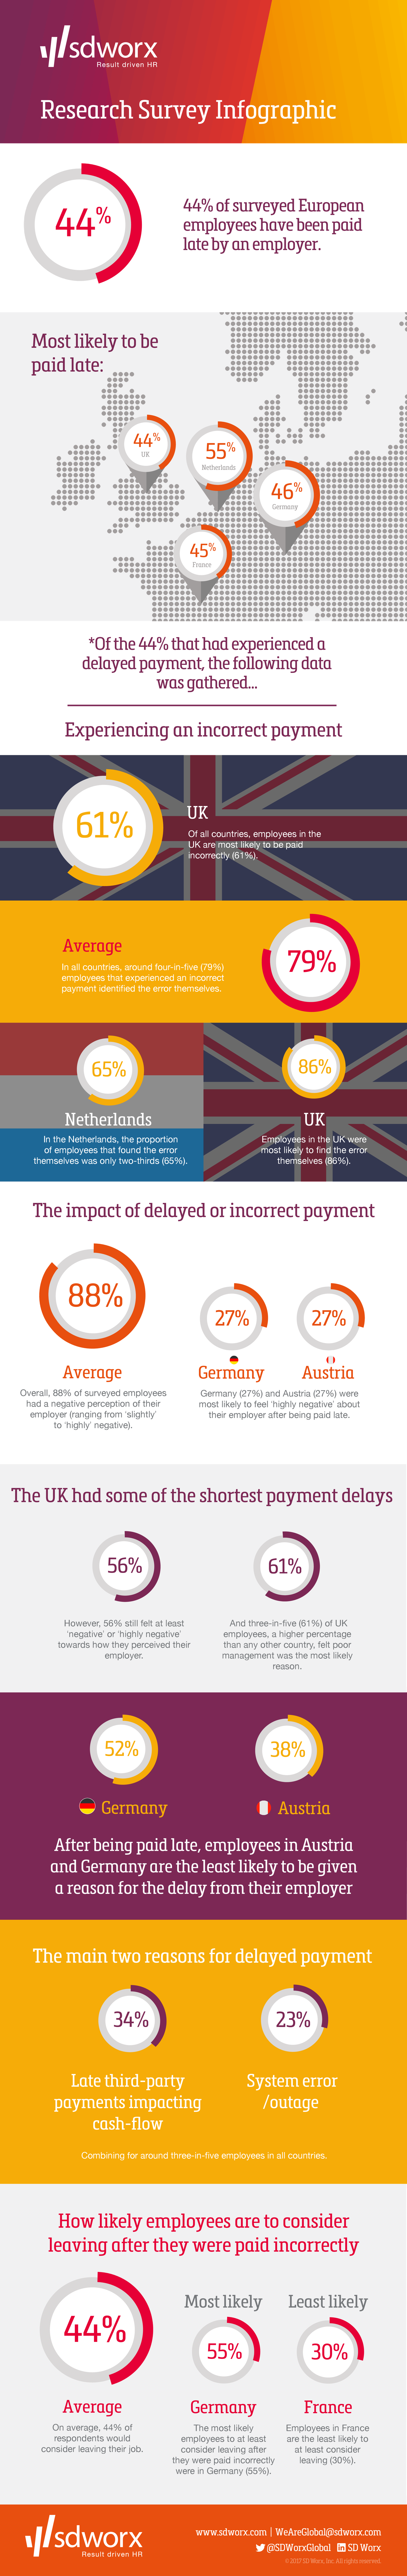 SD Worx Research Survey Infographic